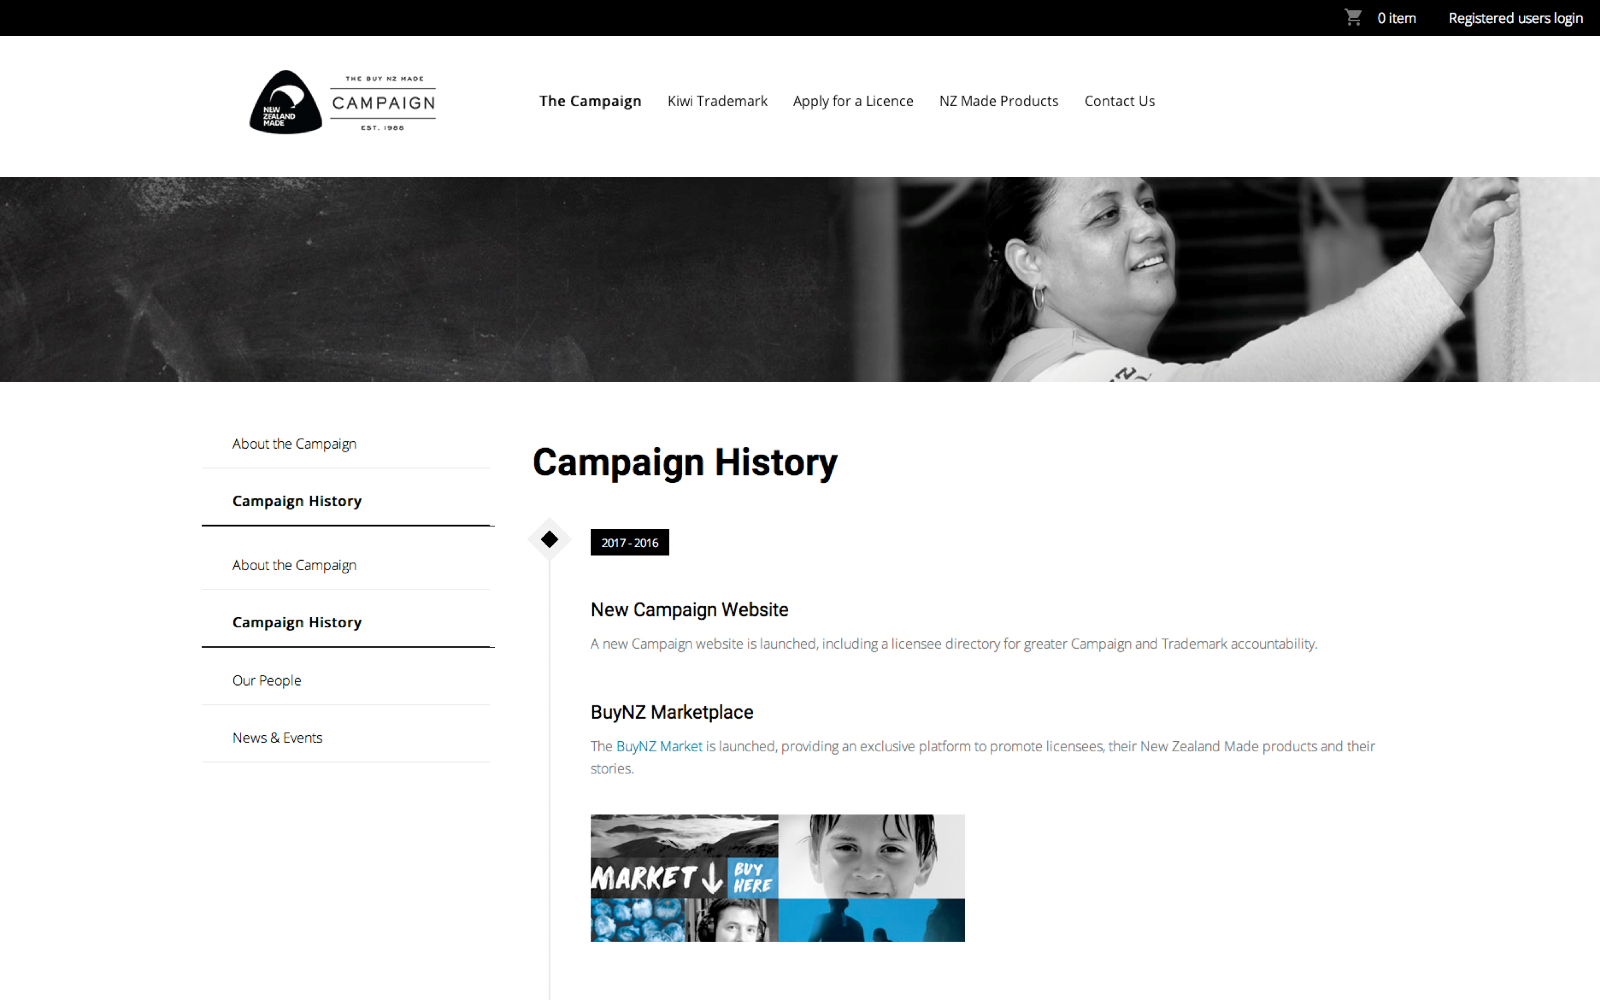 Campaign History